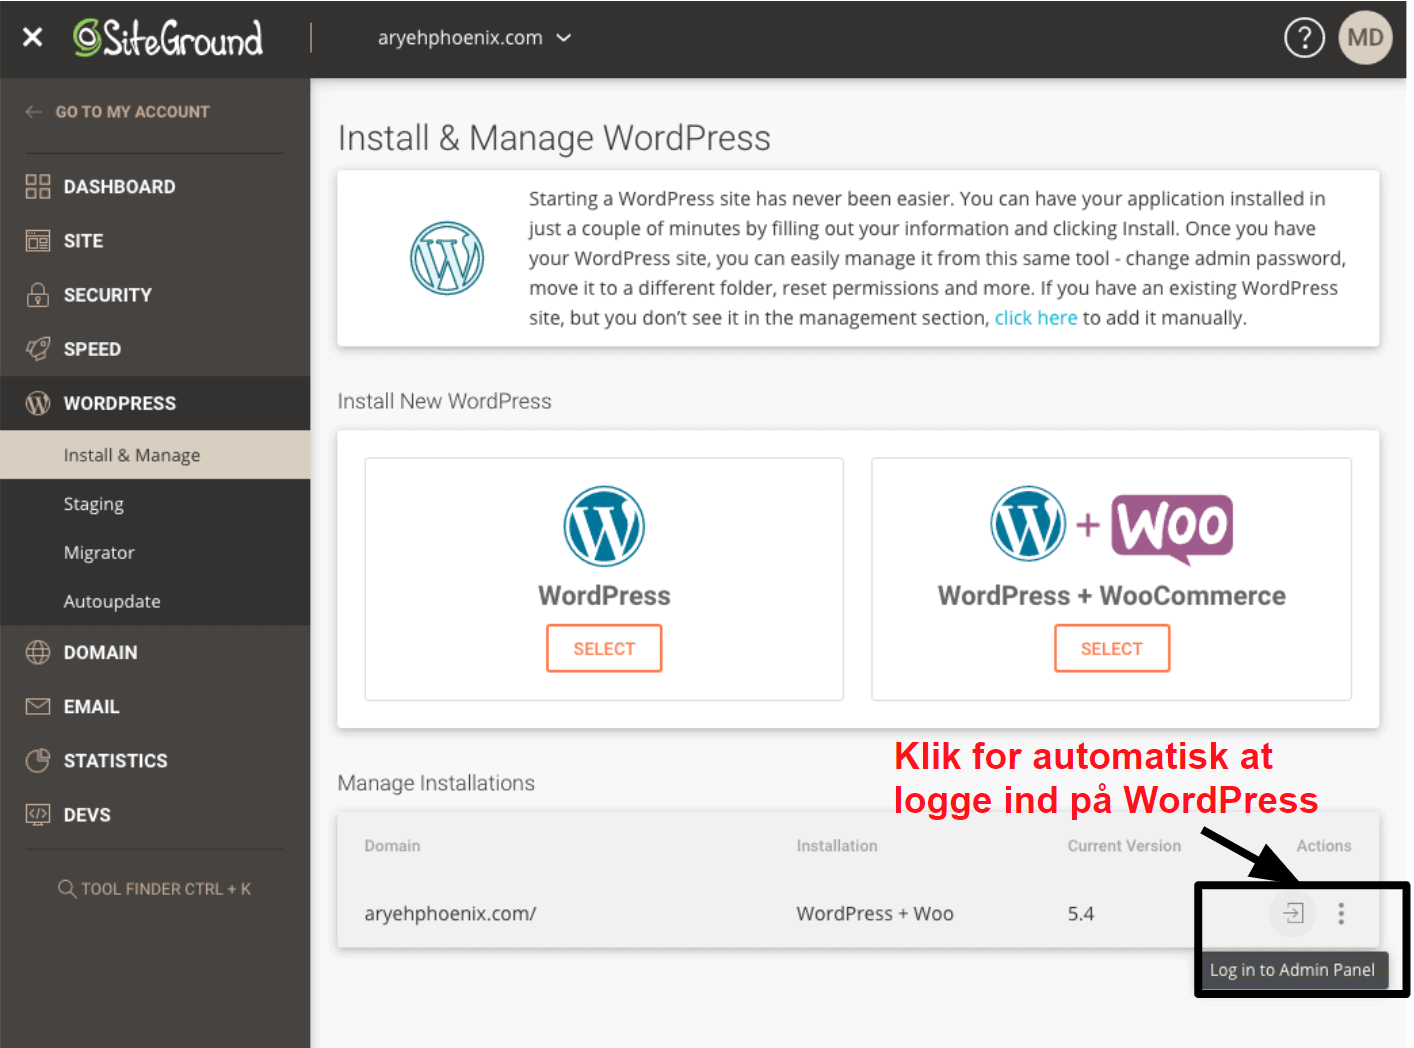 SiteGround offers a one click login option for your WordPress dashboard DA15